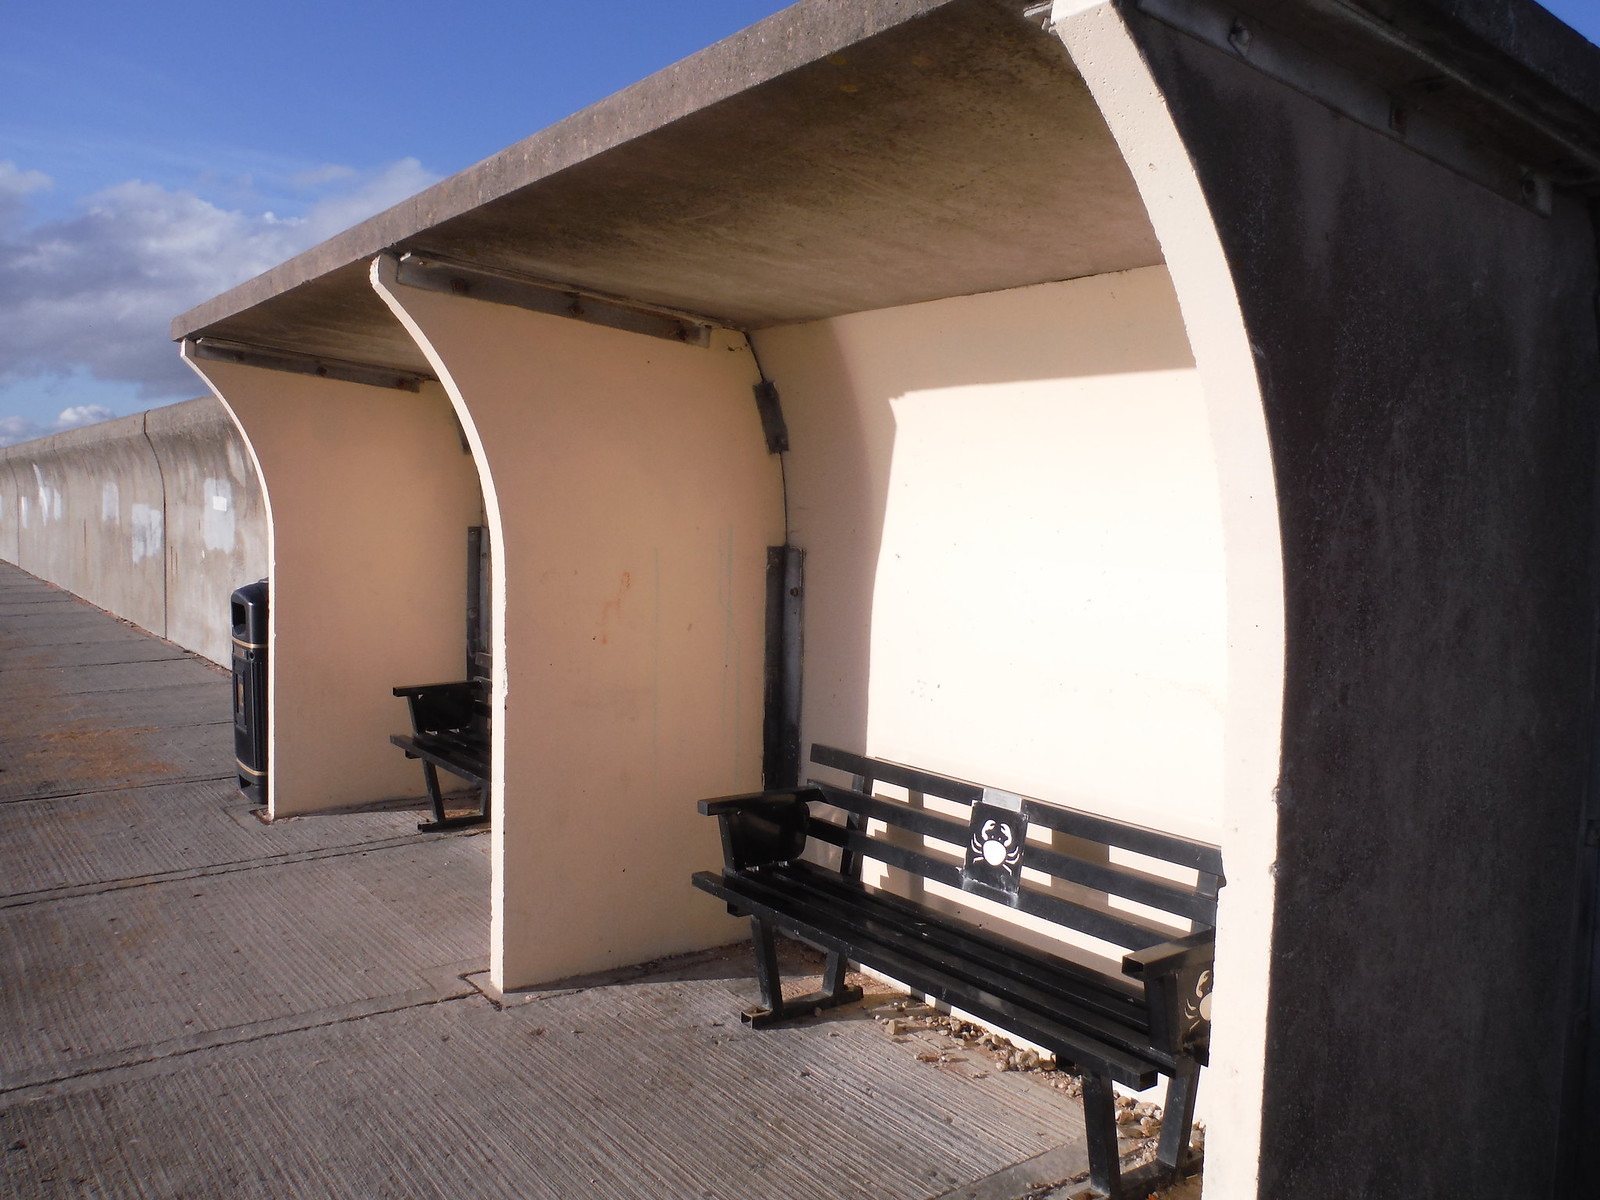 sheltered benches, riverfront, Canvey Island SWC Walk 258 Benfleet Circular (via Canvey Island)